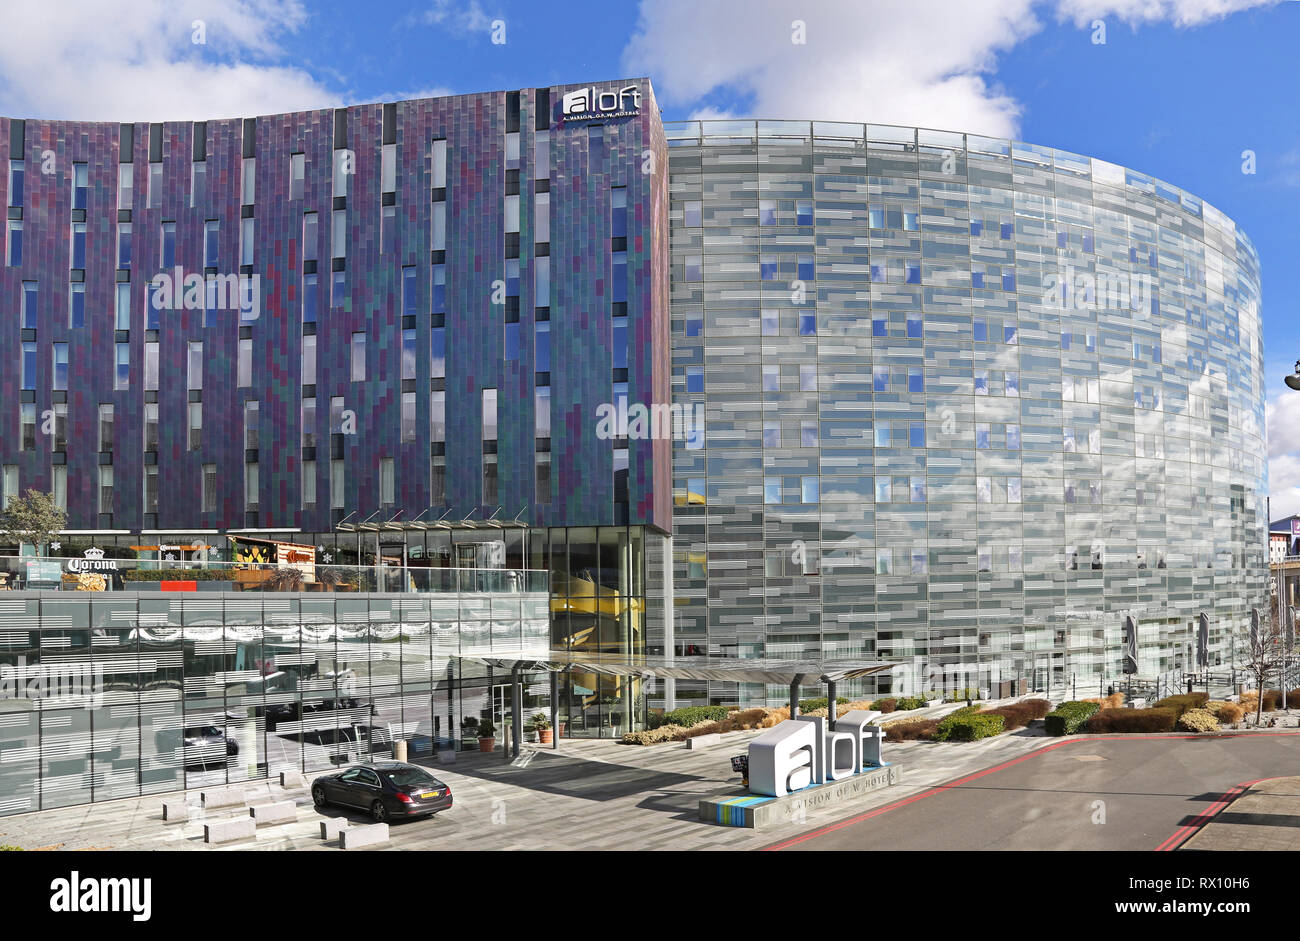 The new 'W' Aloft hotel next to the Excel Exhibition Centre in London's docklands district, east of the City. Shows multi-coloured metallic cladding. - Stock Image